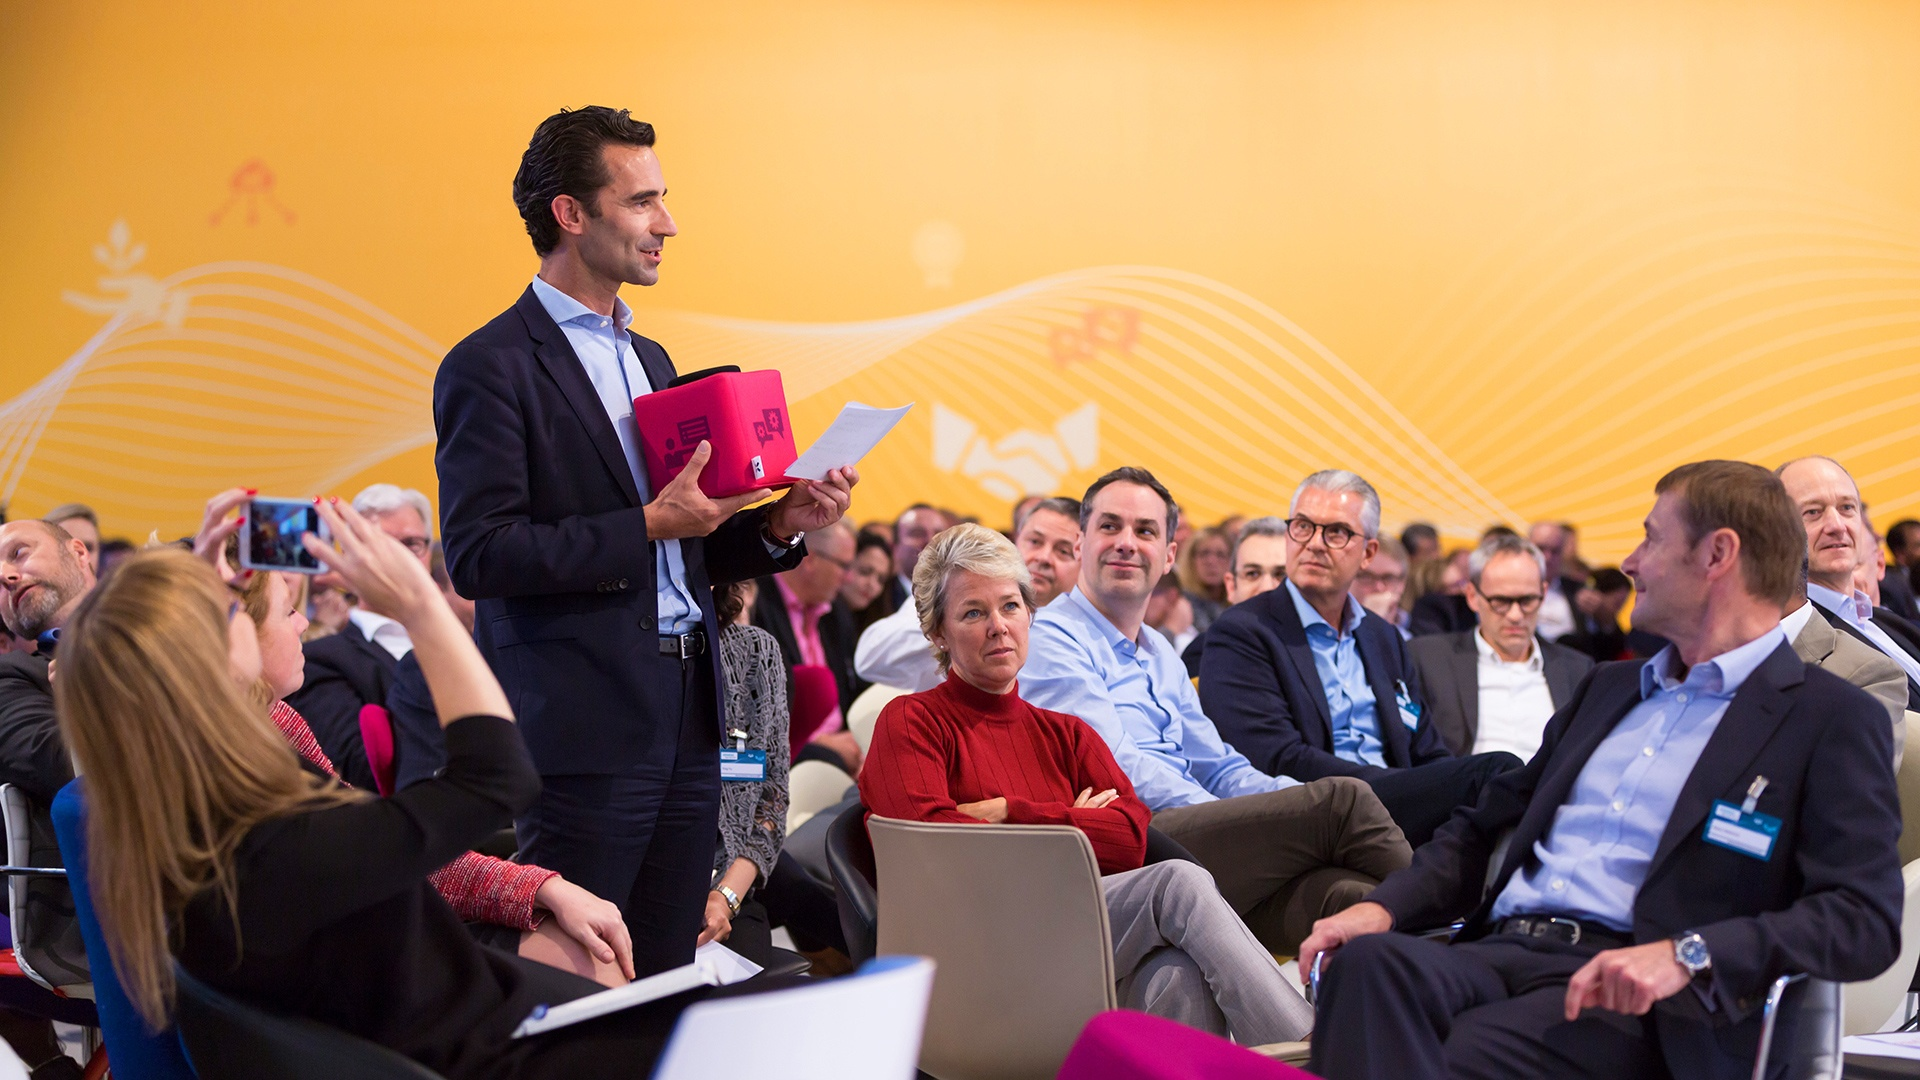 Siemens Business Conference 2017